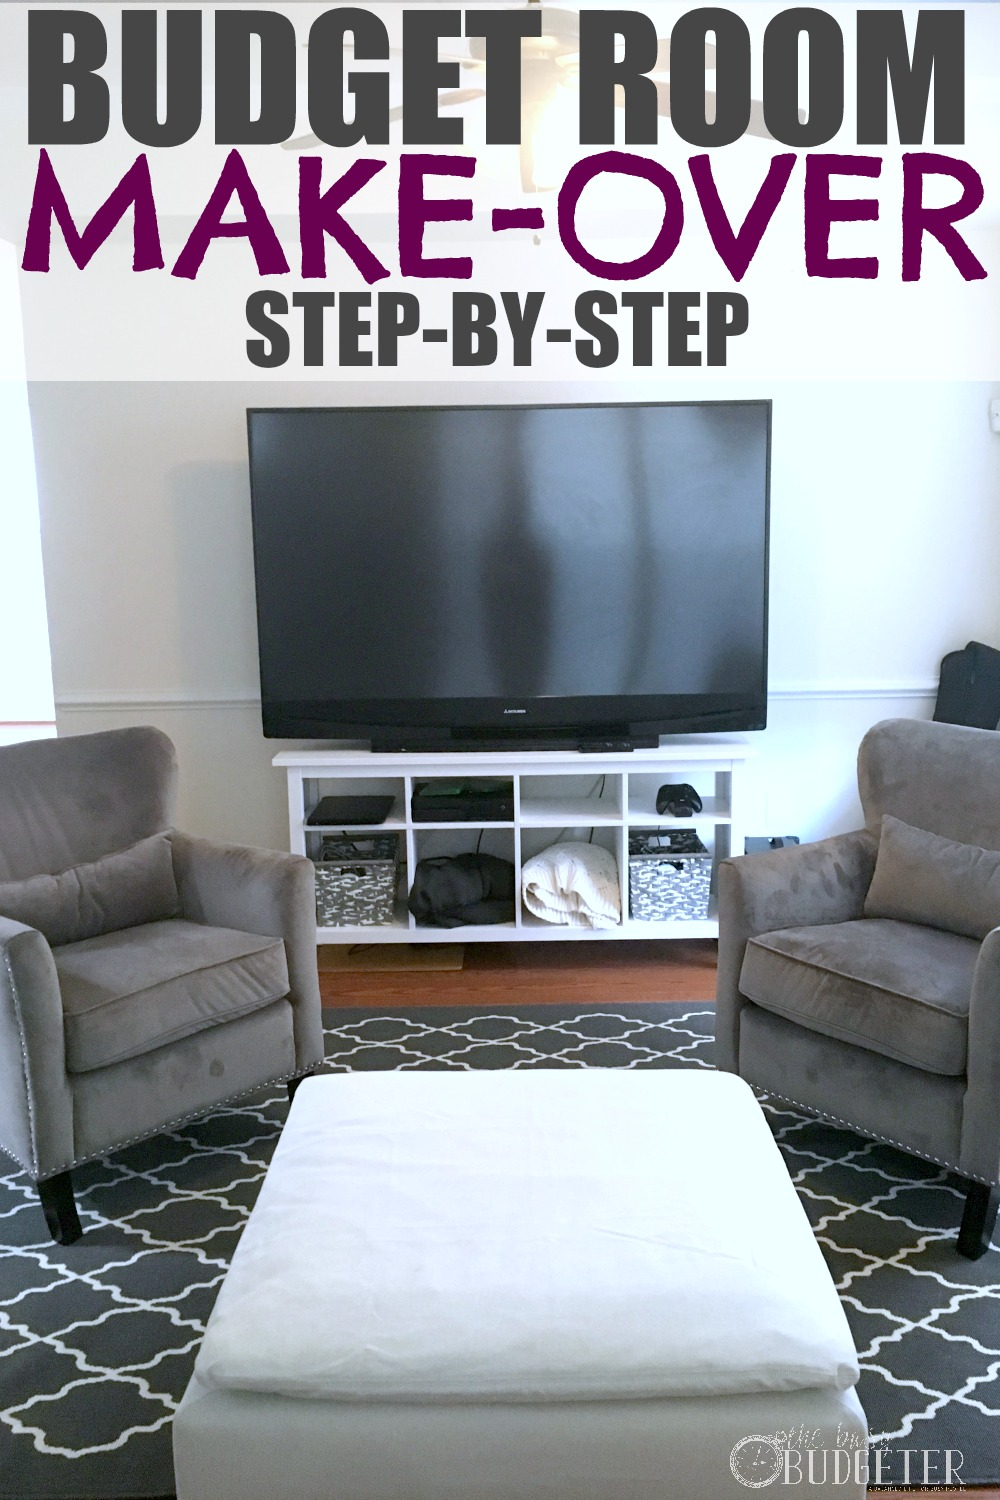 DIY Room Makeover: So excited about this! Maybe I can finally make-over our family room without going broke...and this great info might actually convince my husband too! ;)